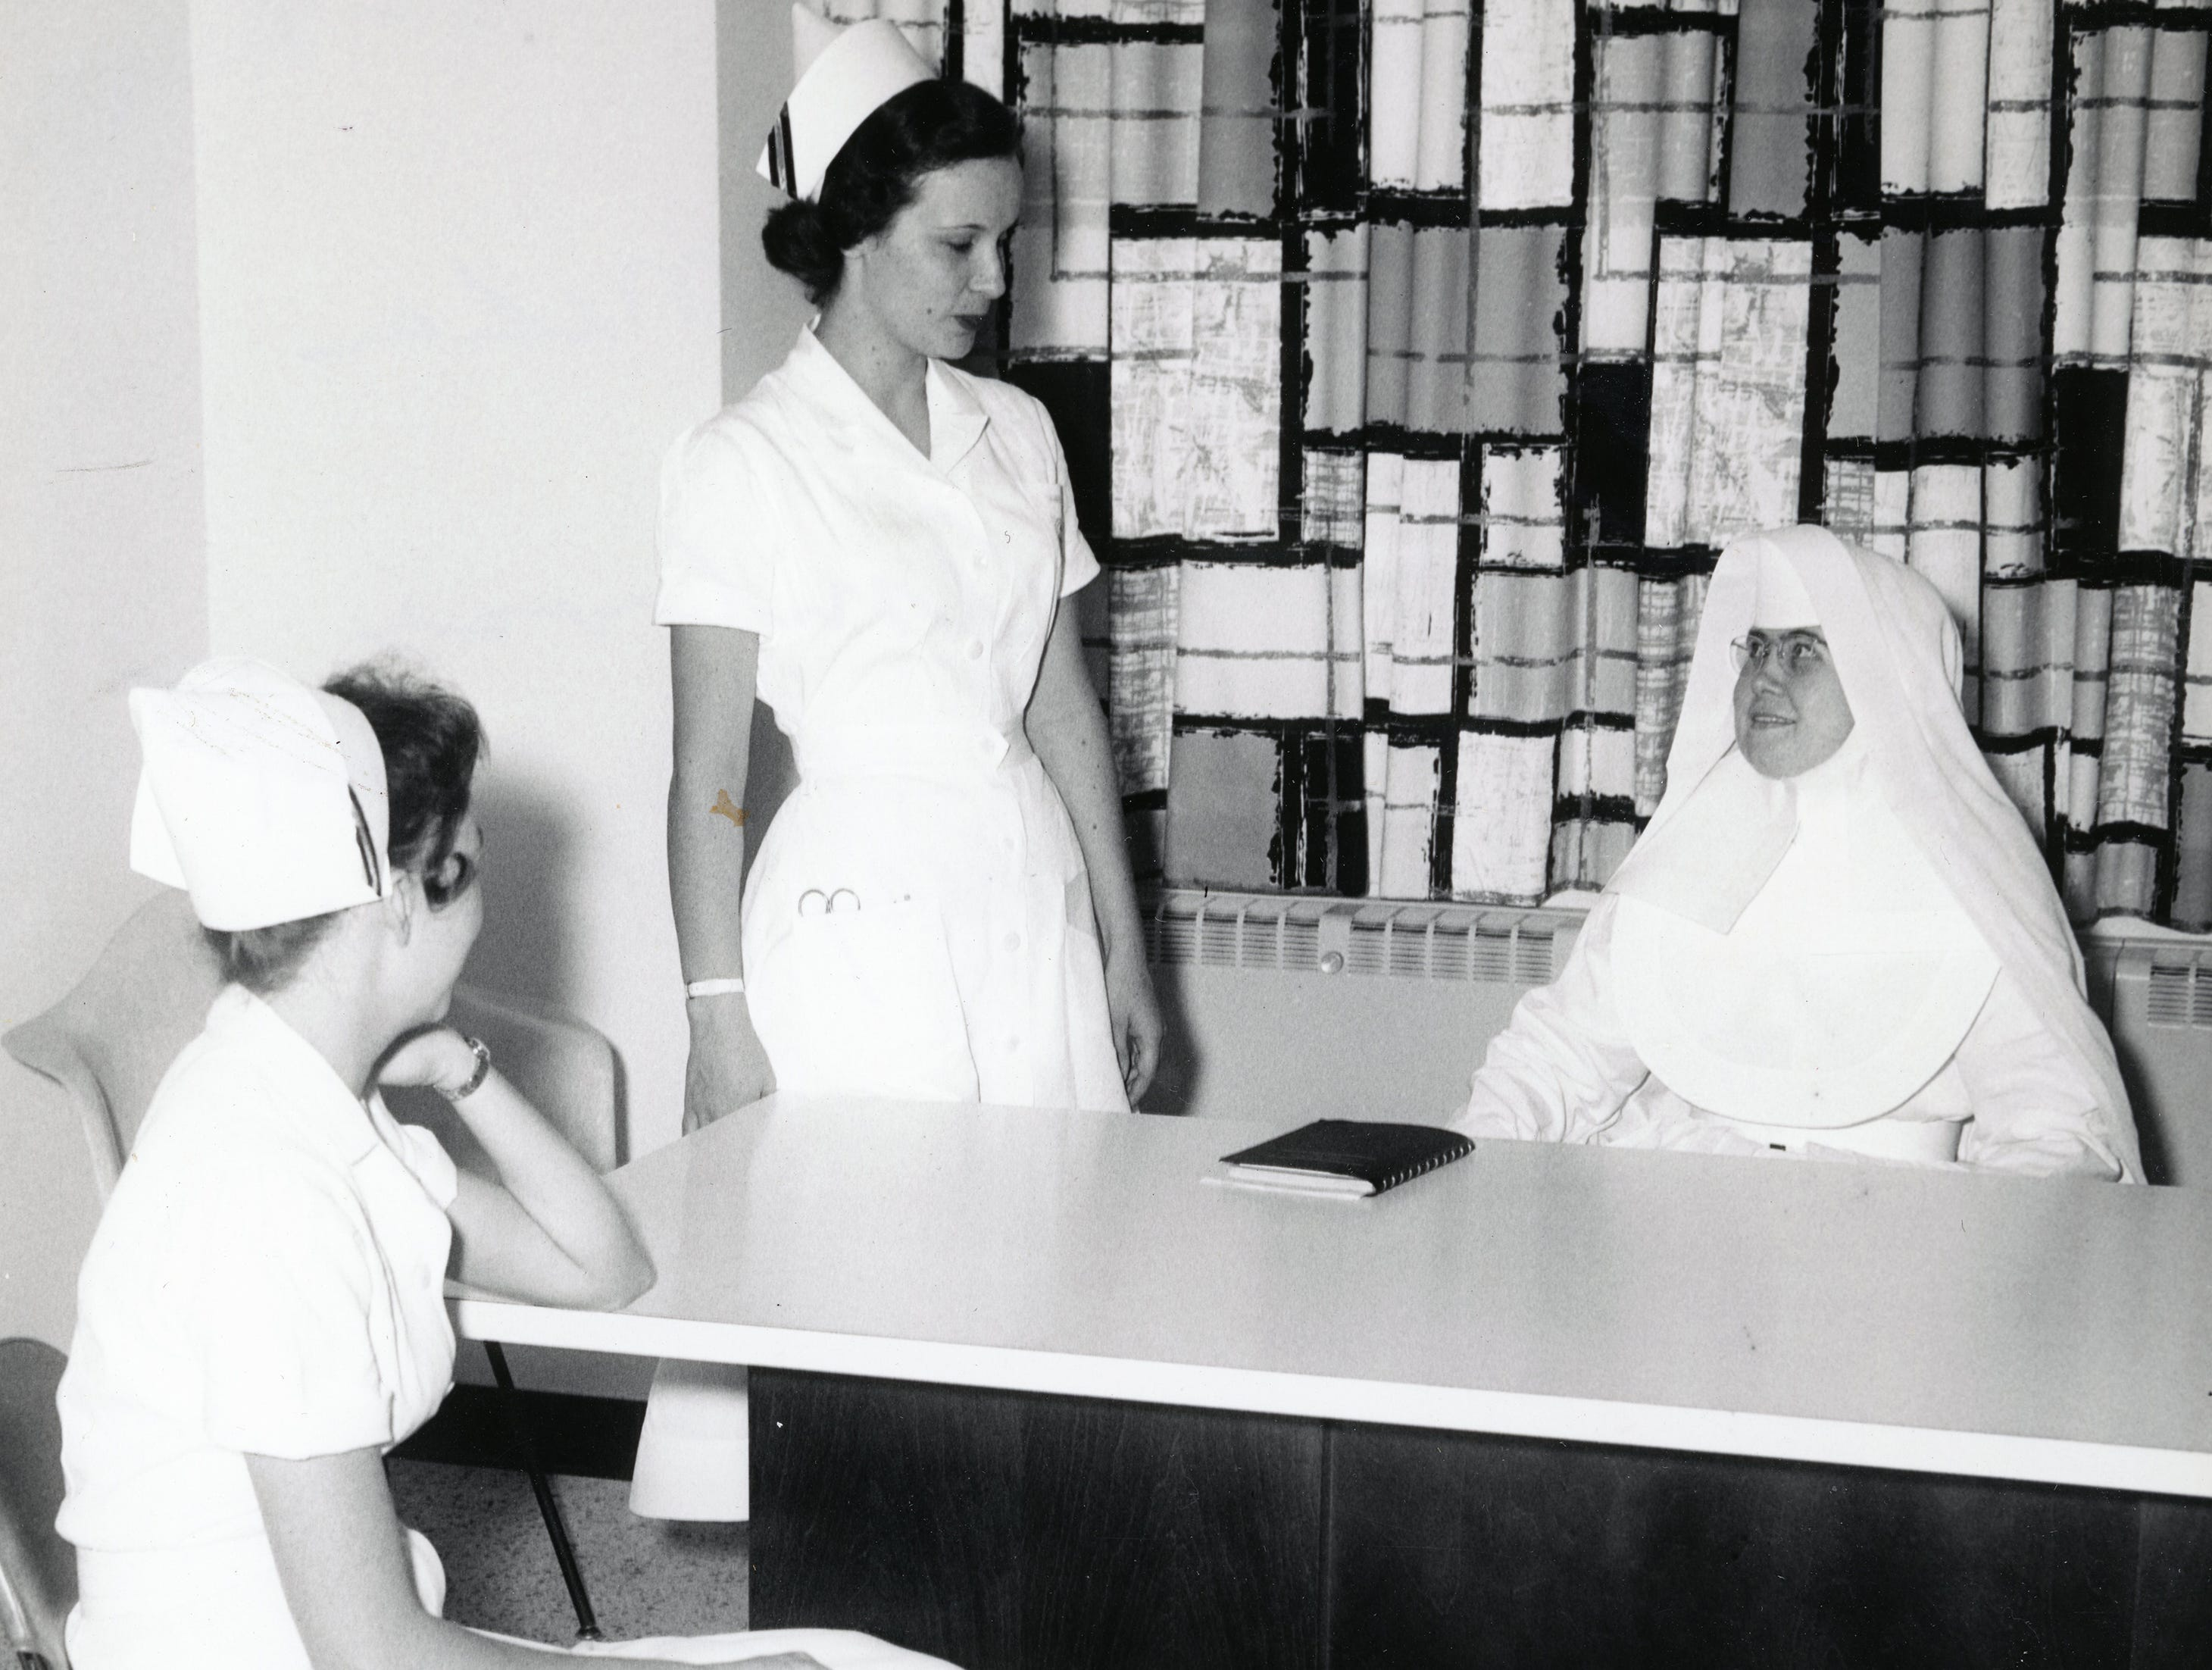 Peggy McMahan, Debra Ambrose and Sister Mary Elaine at St. Mary's Hospital in the 1950s.